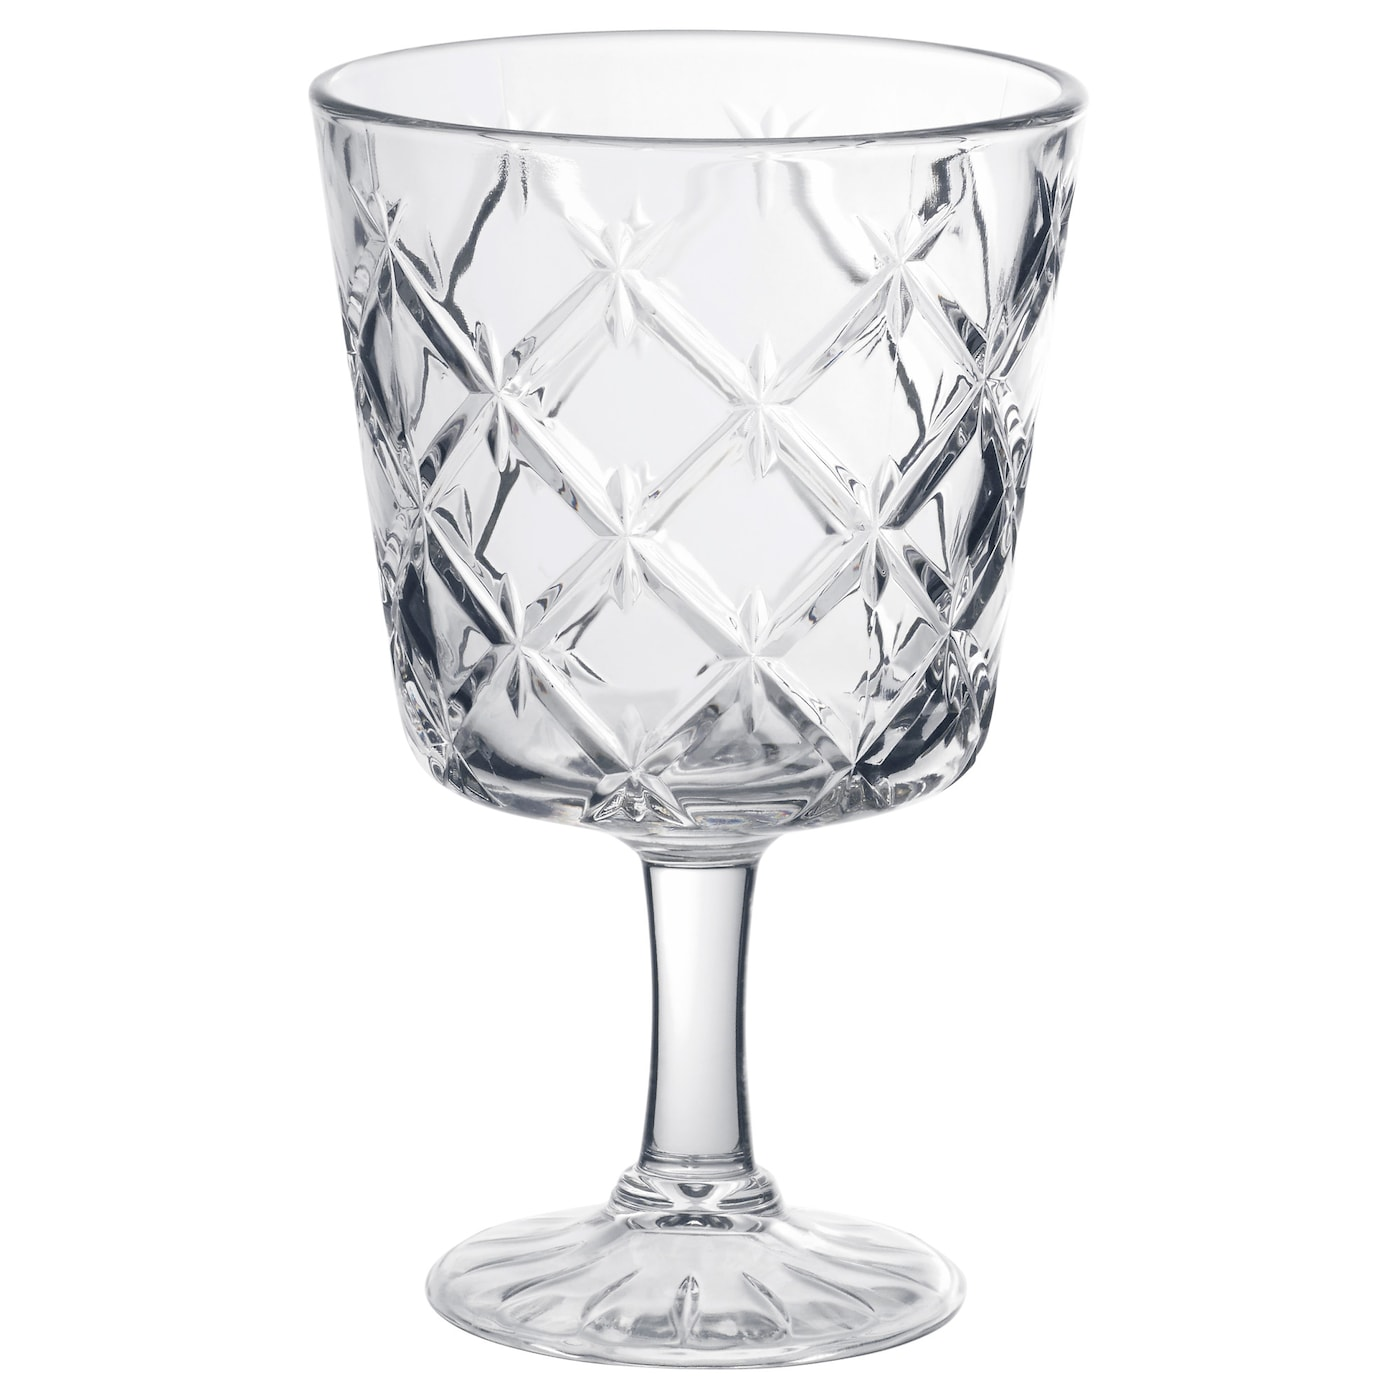 IKEA FLIMRA wine glass